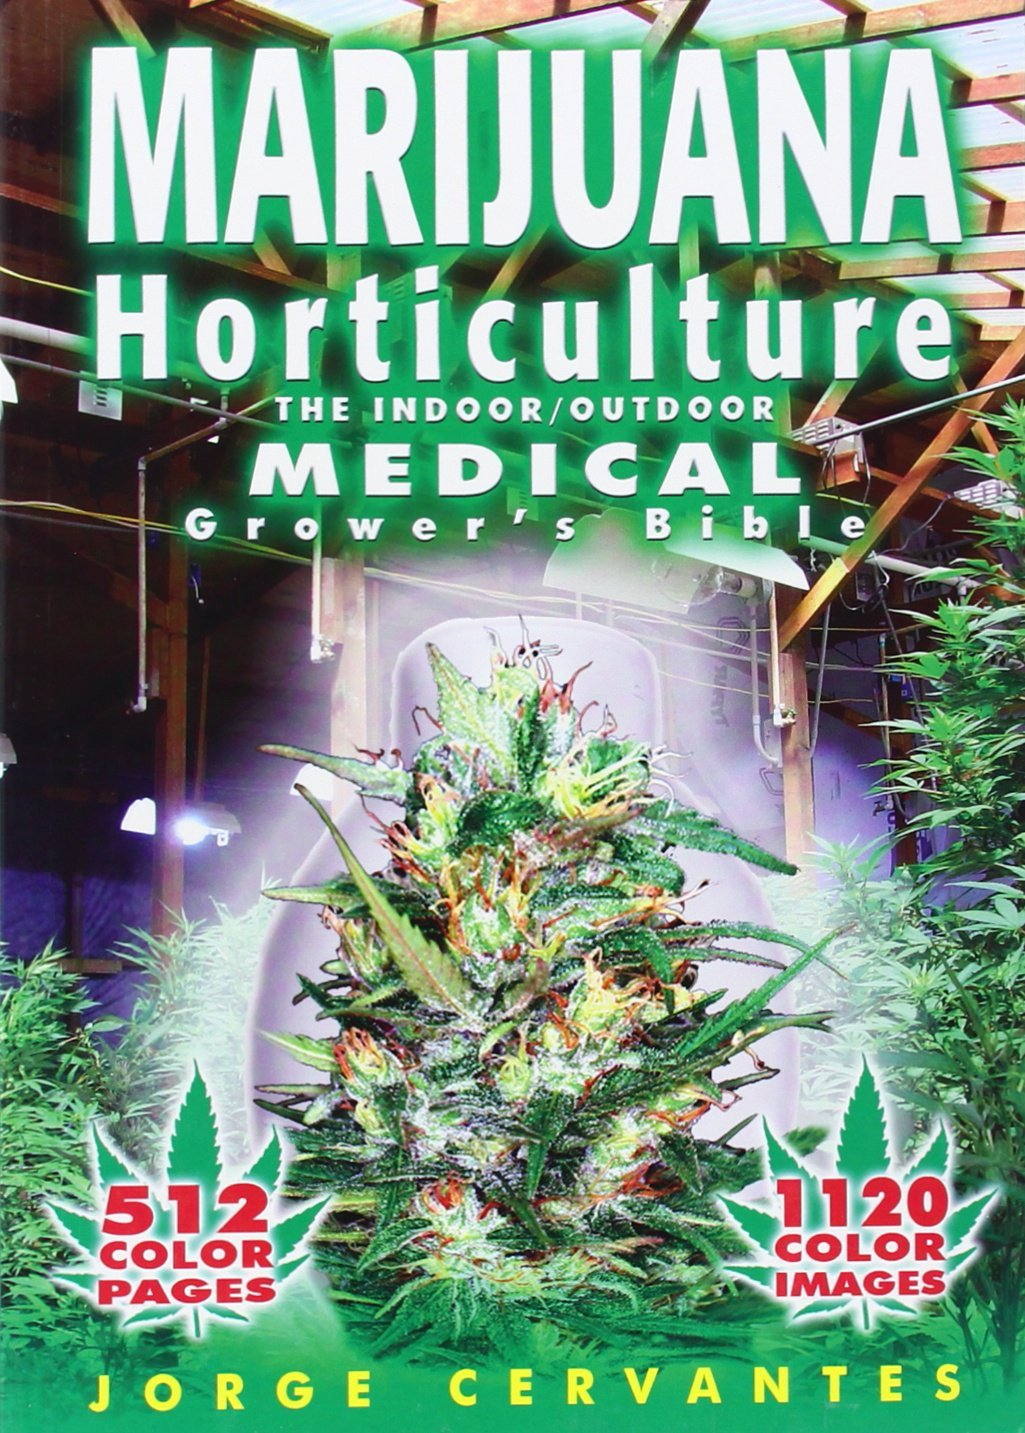 Marijuana, Horticulture: The Indoor/Outdoor (Medical Grower's Bible) - Tolerant Planet